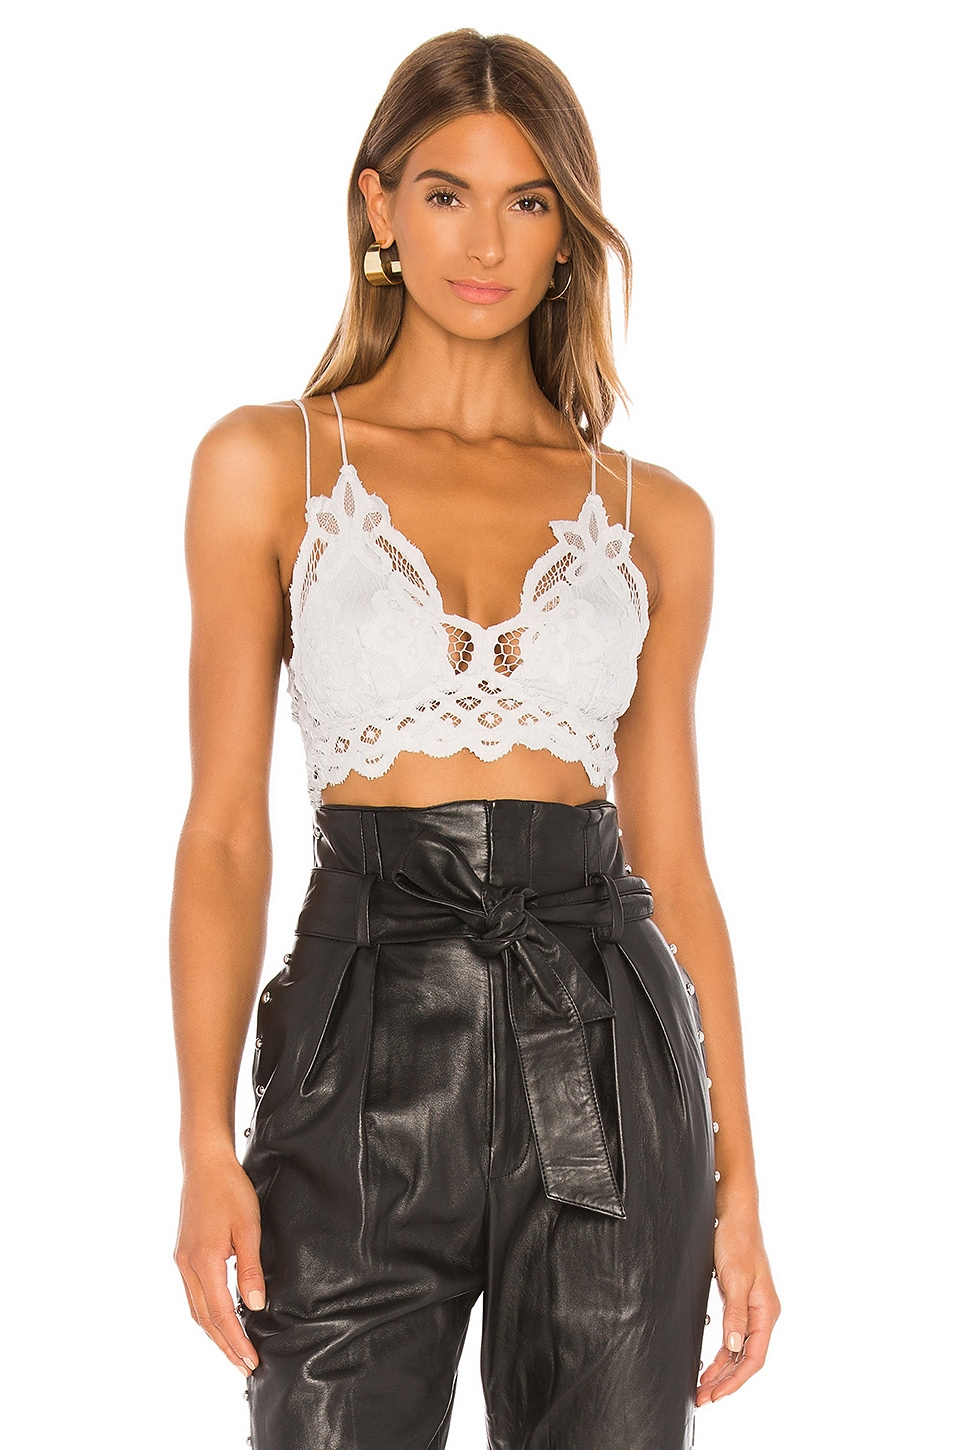 Free People Adella Bralette in Light Grey